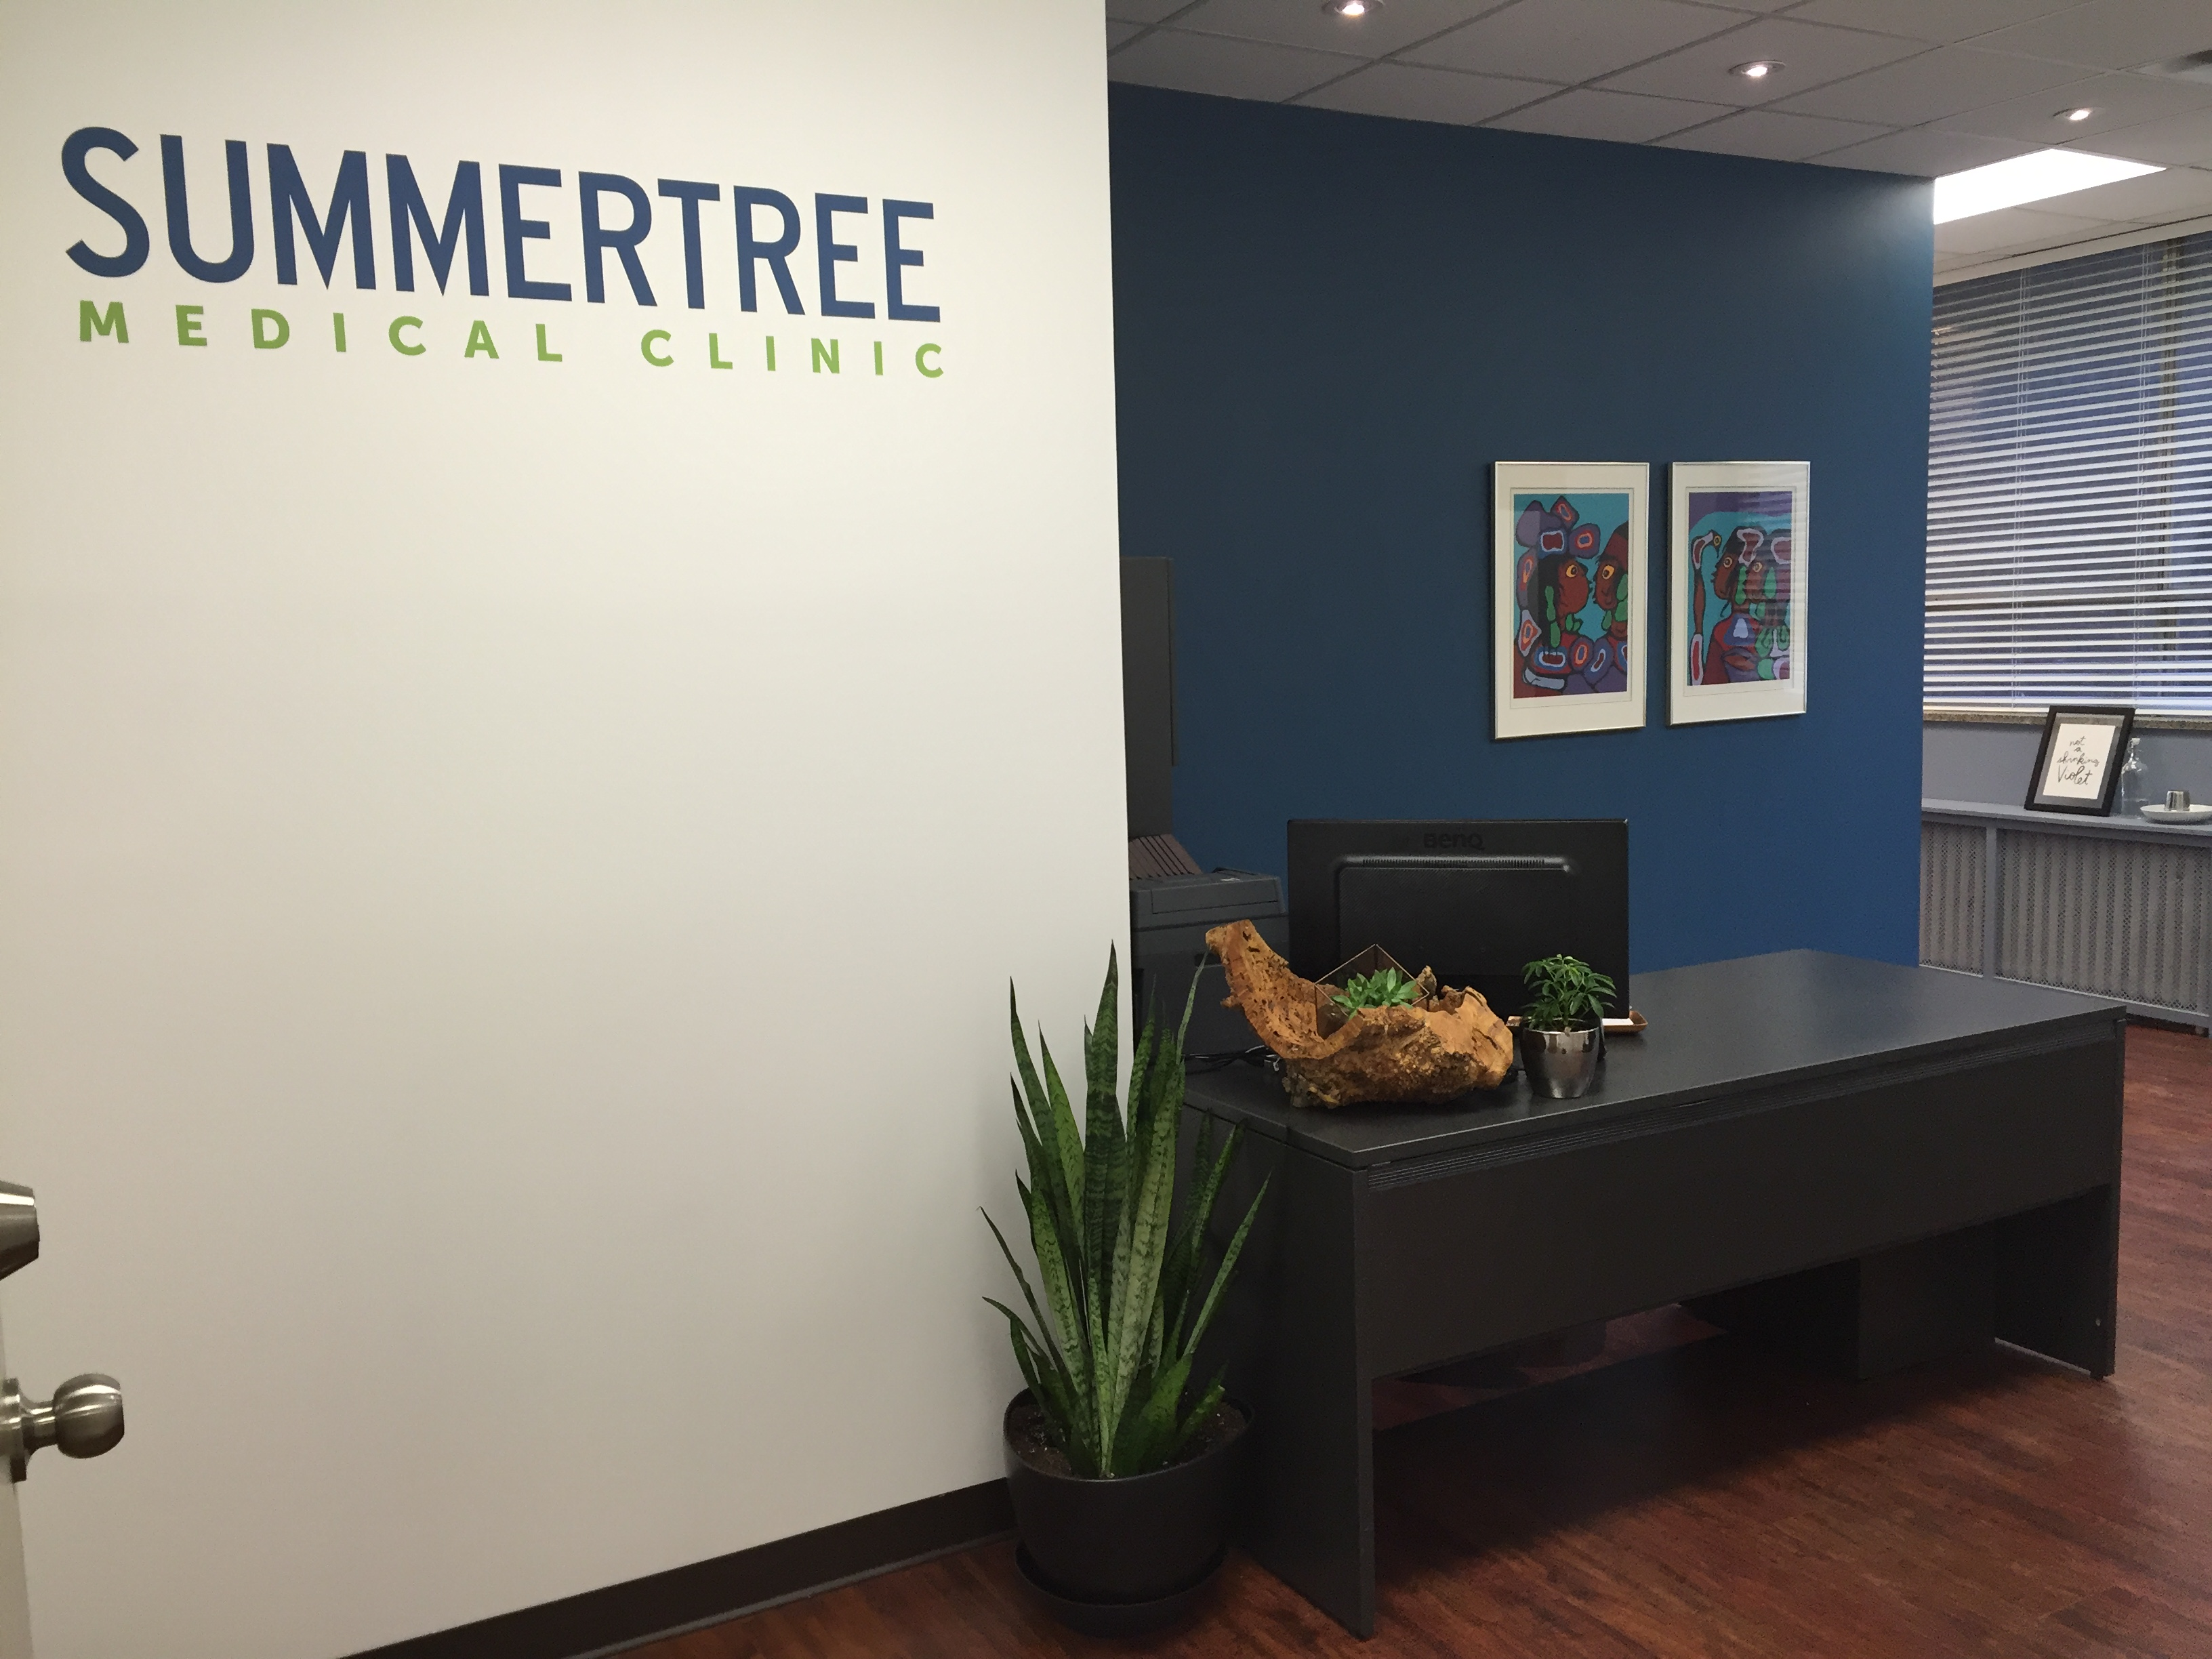 Welcome to Summertree Medical Clinic - Cannabis clinic providing prescriptions for chronic pain